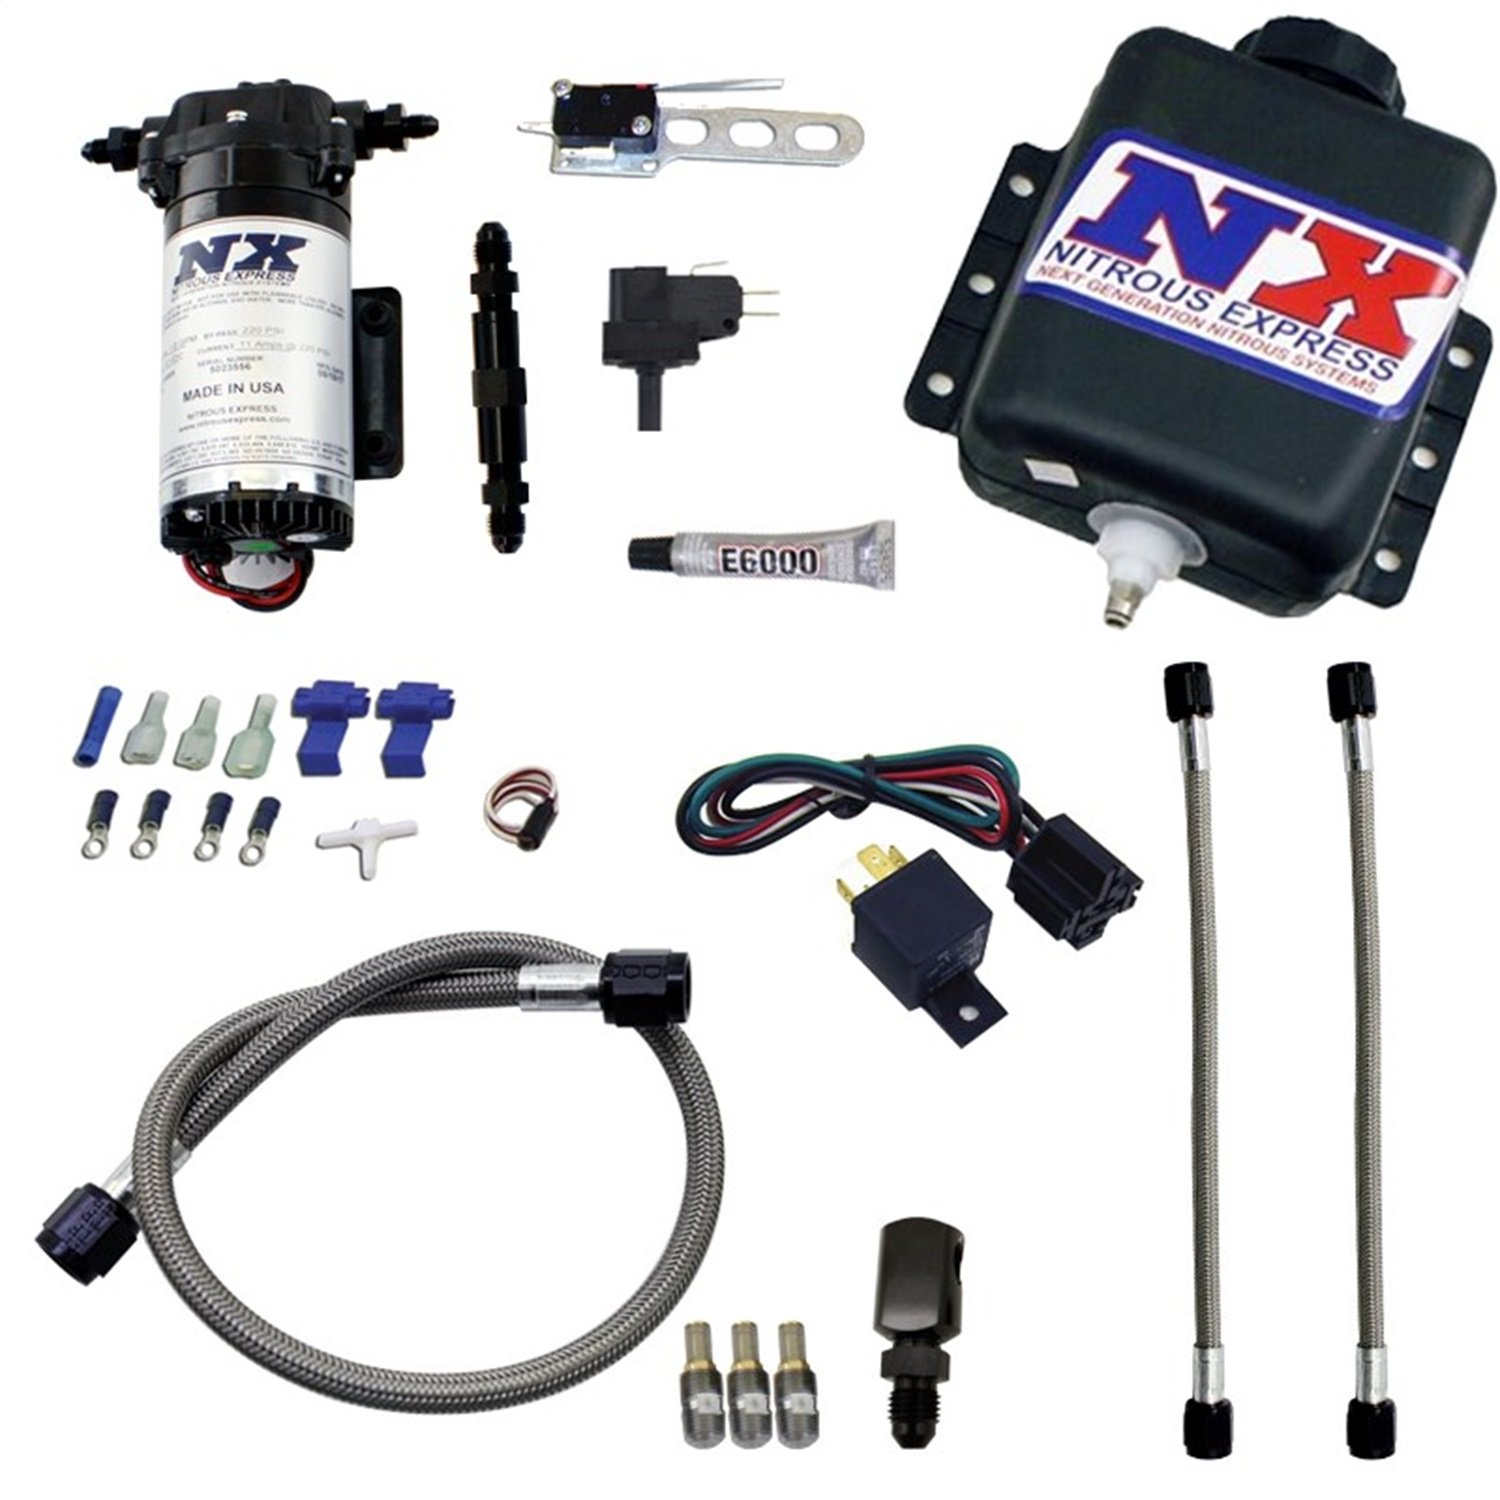 Nitrous Express 15020 Water-Methanol Injection System for Gas Stage 1 Boost Engine